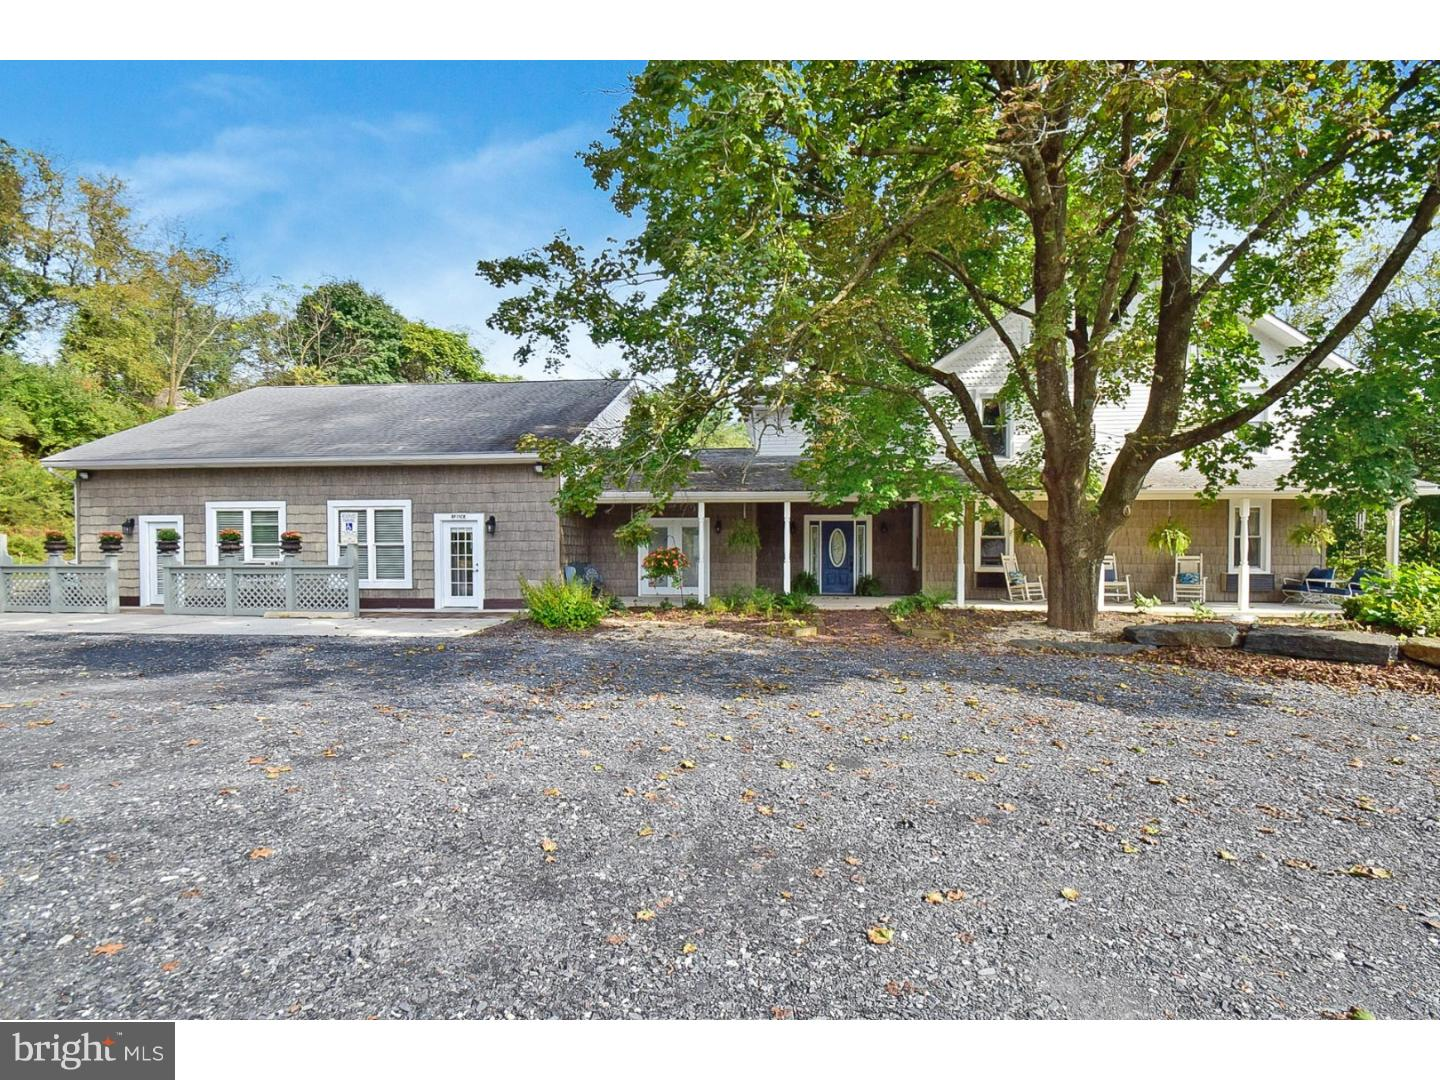 2307 COVE ROAD, FOGELSVILLE, PA 18051